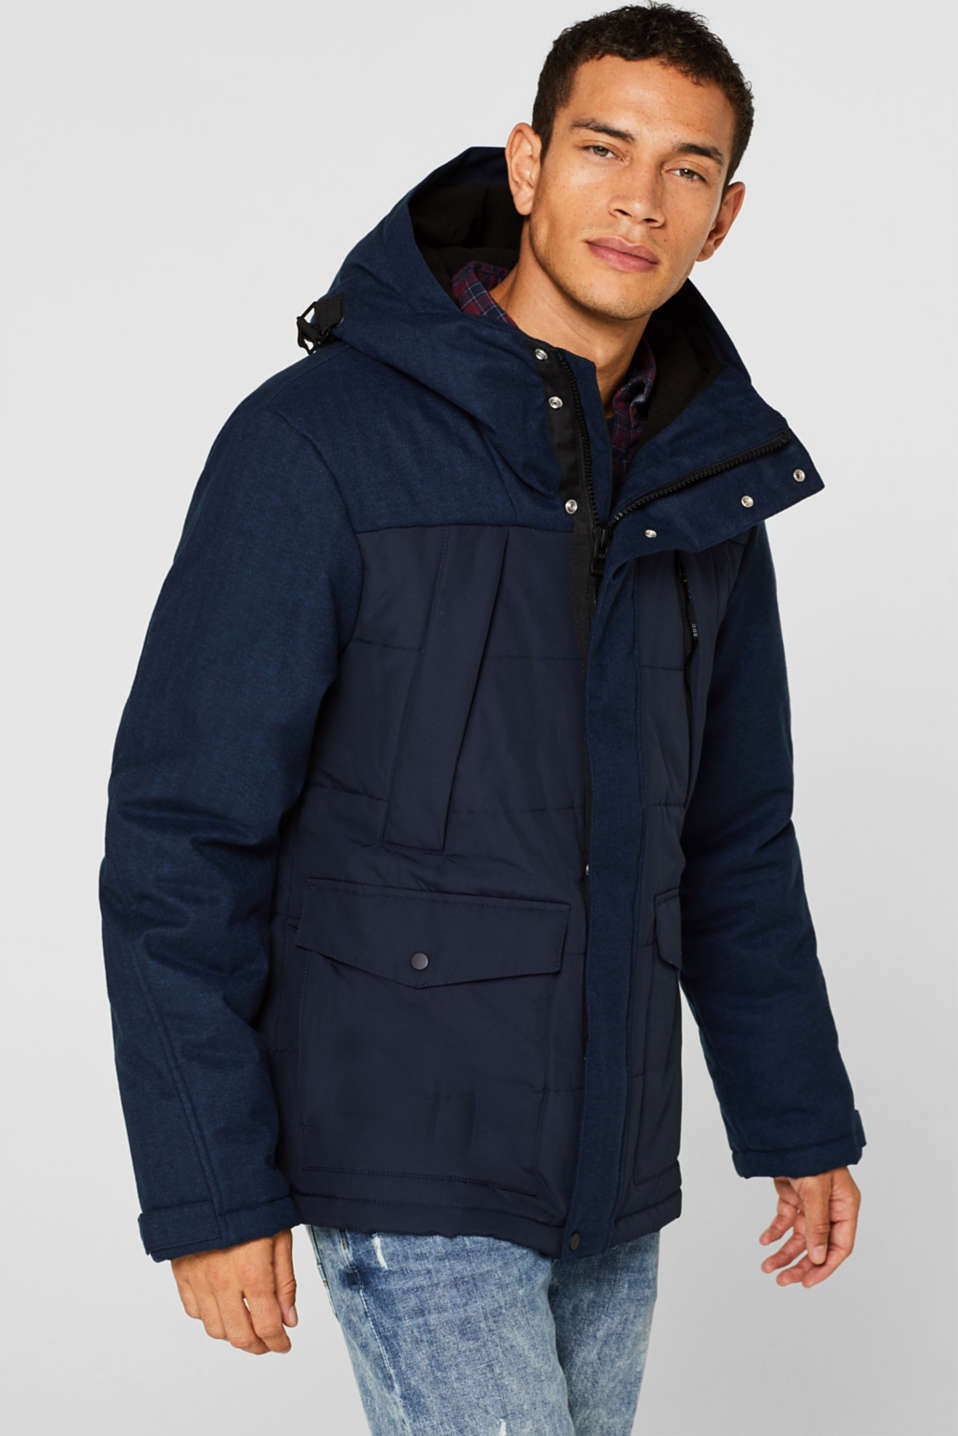 Jackets outdoor woven, NAVY, detail image number 0